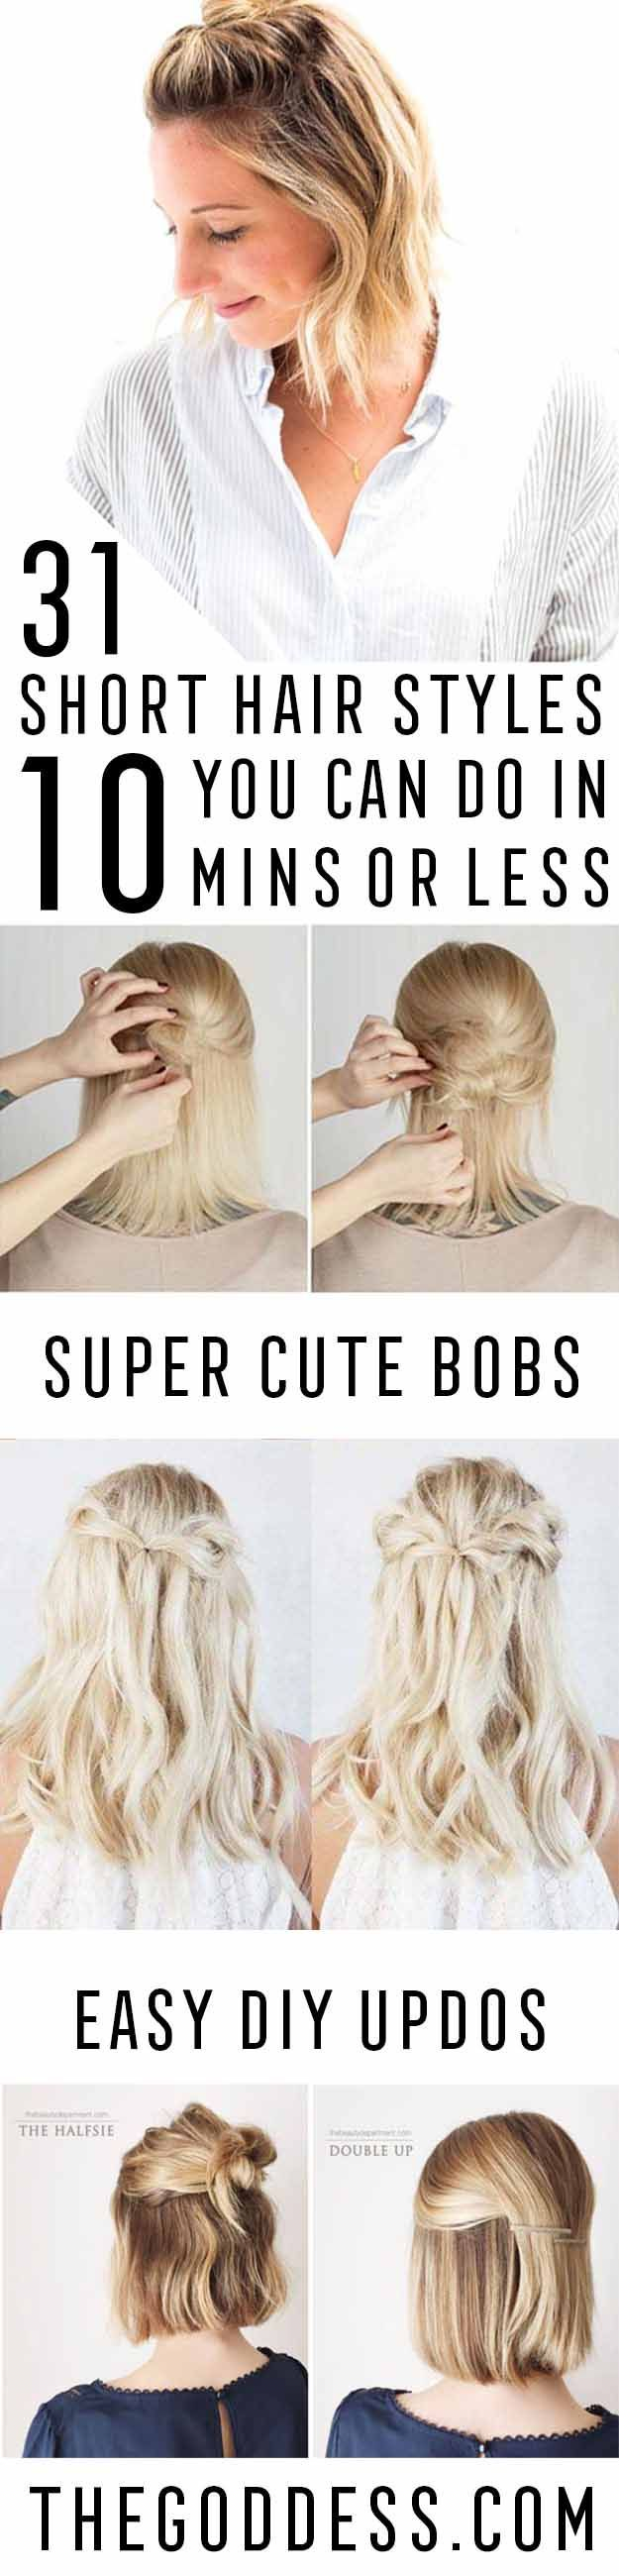 The 83 best images about Beauty on Pinterest   Short hair dos ...